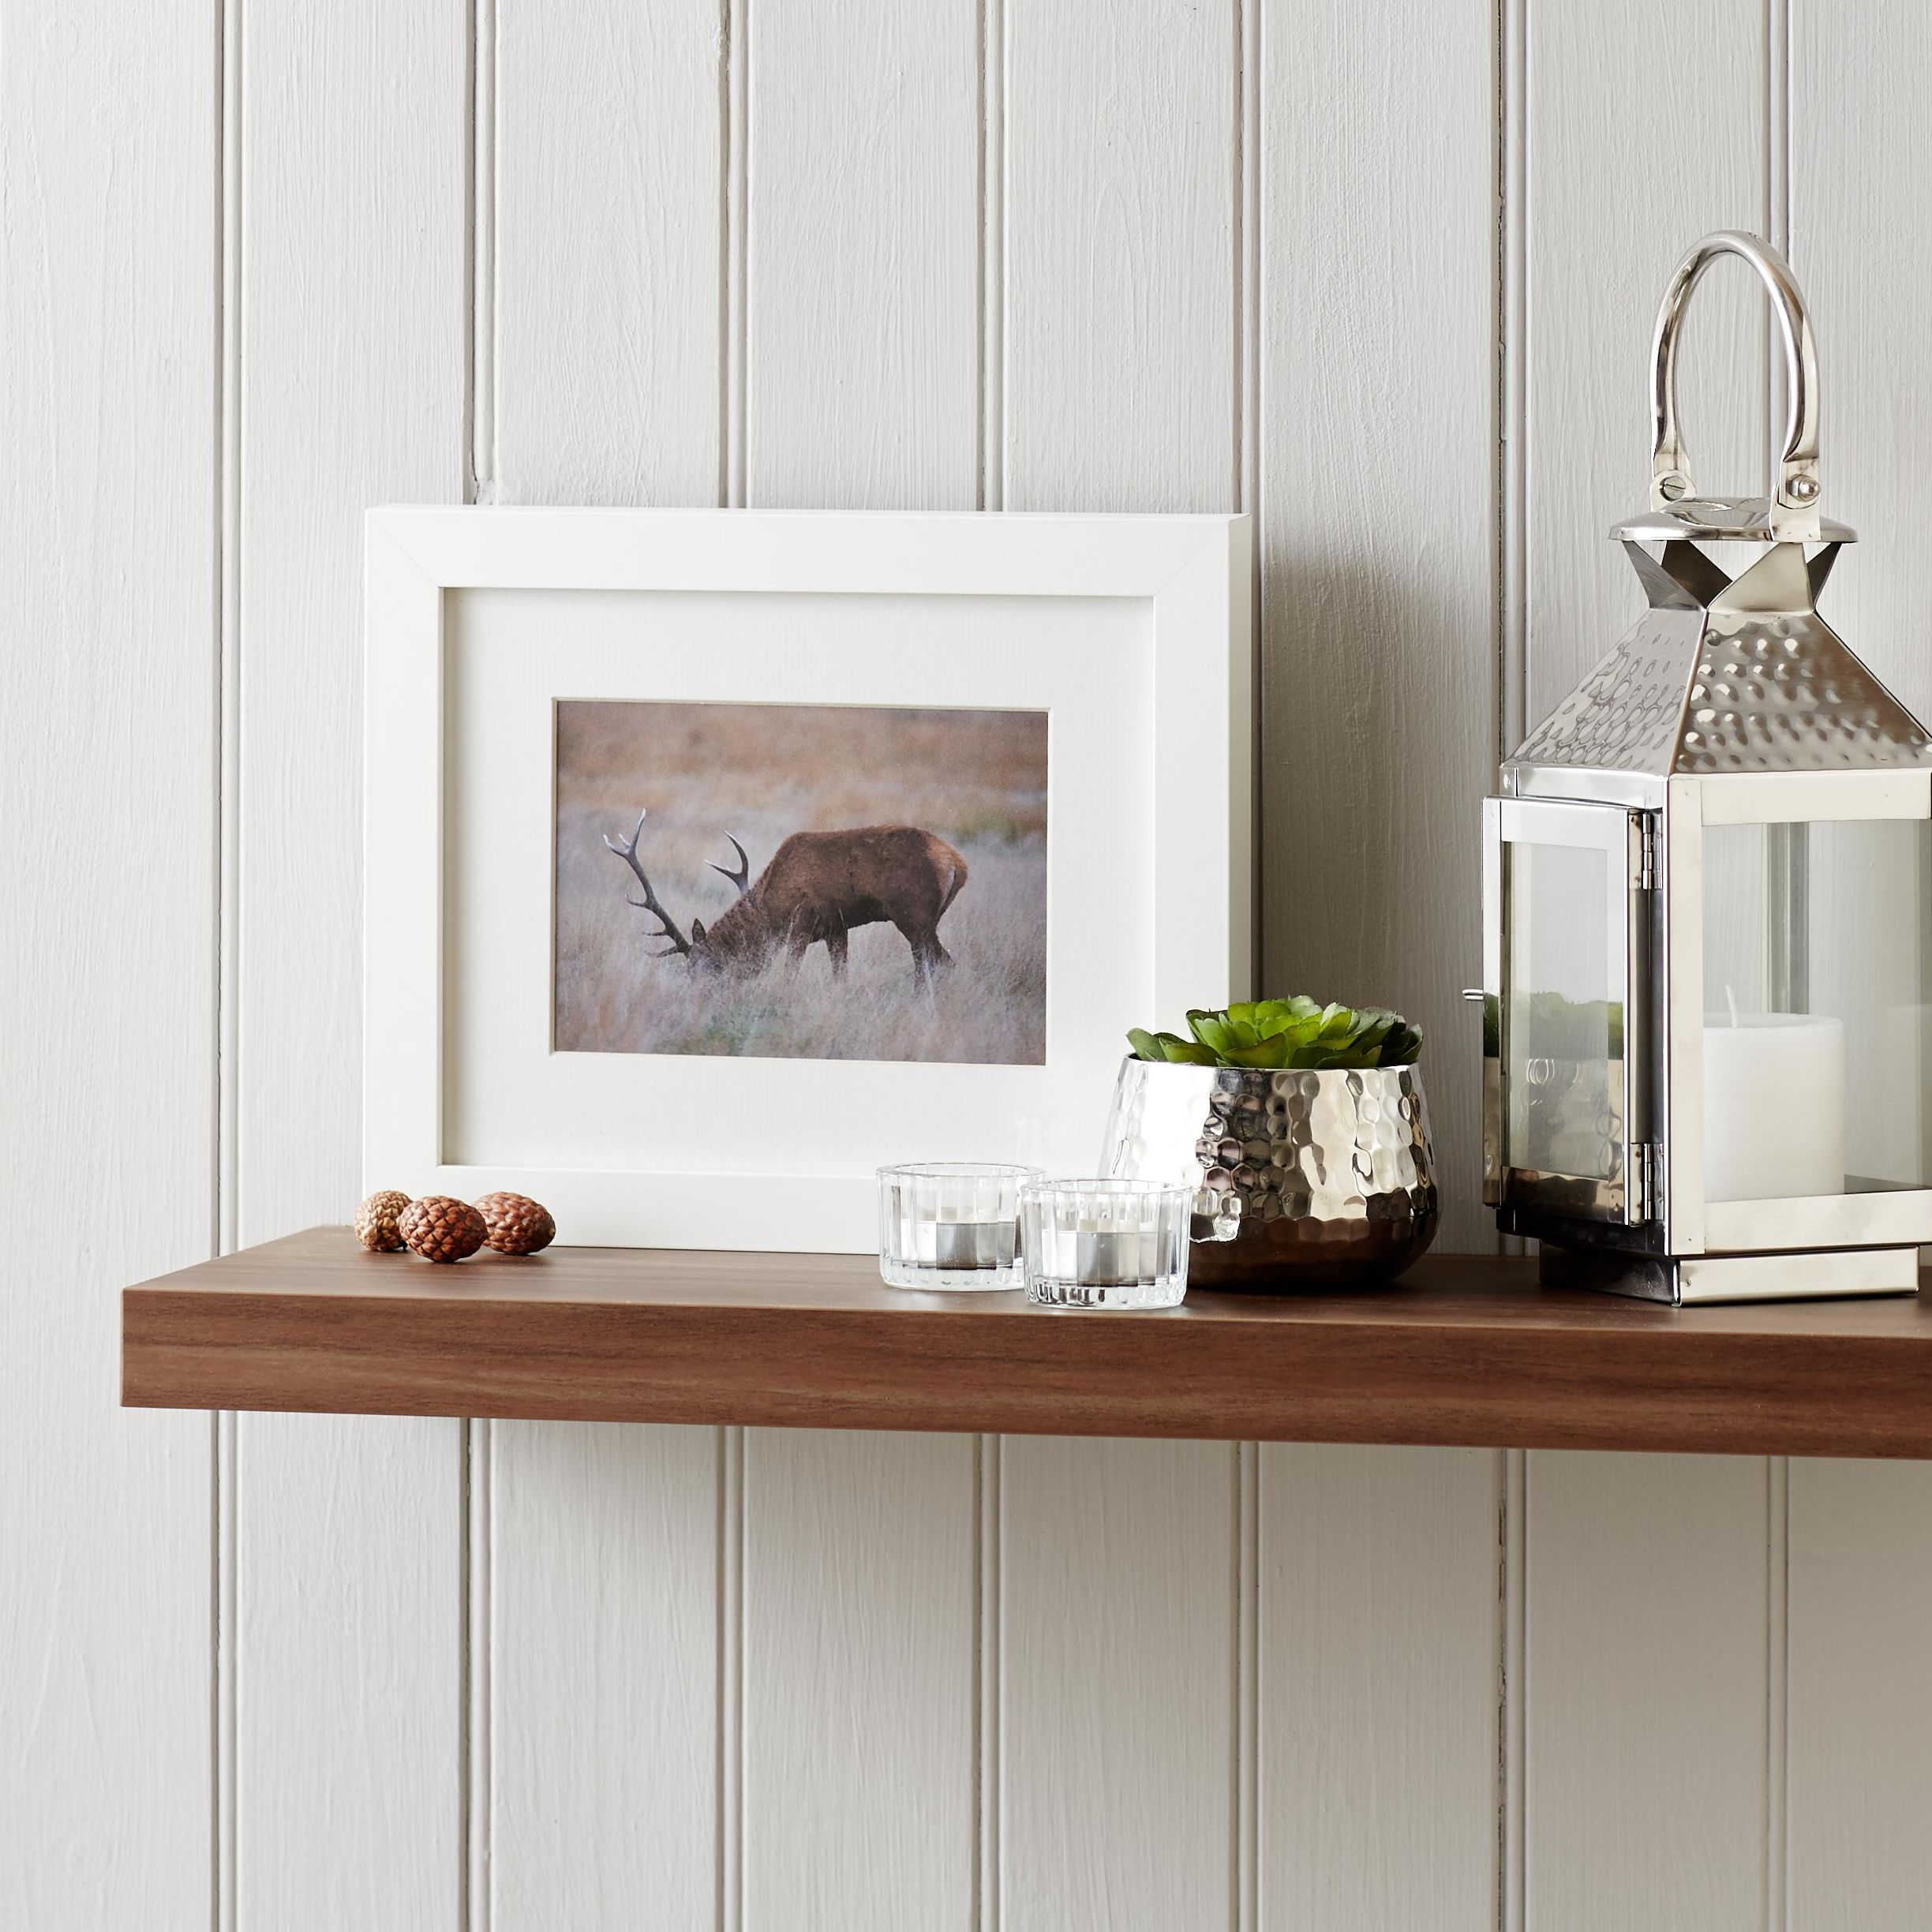 how to put up floating wall shelf